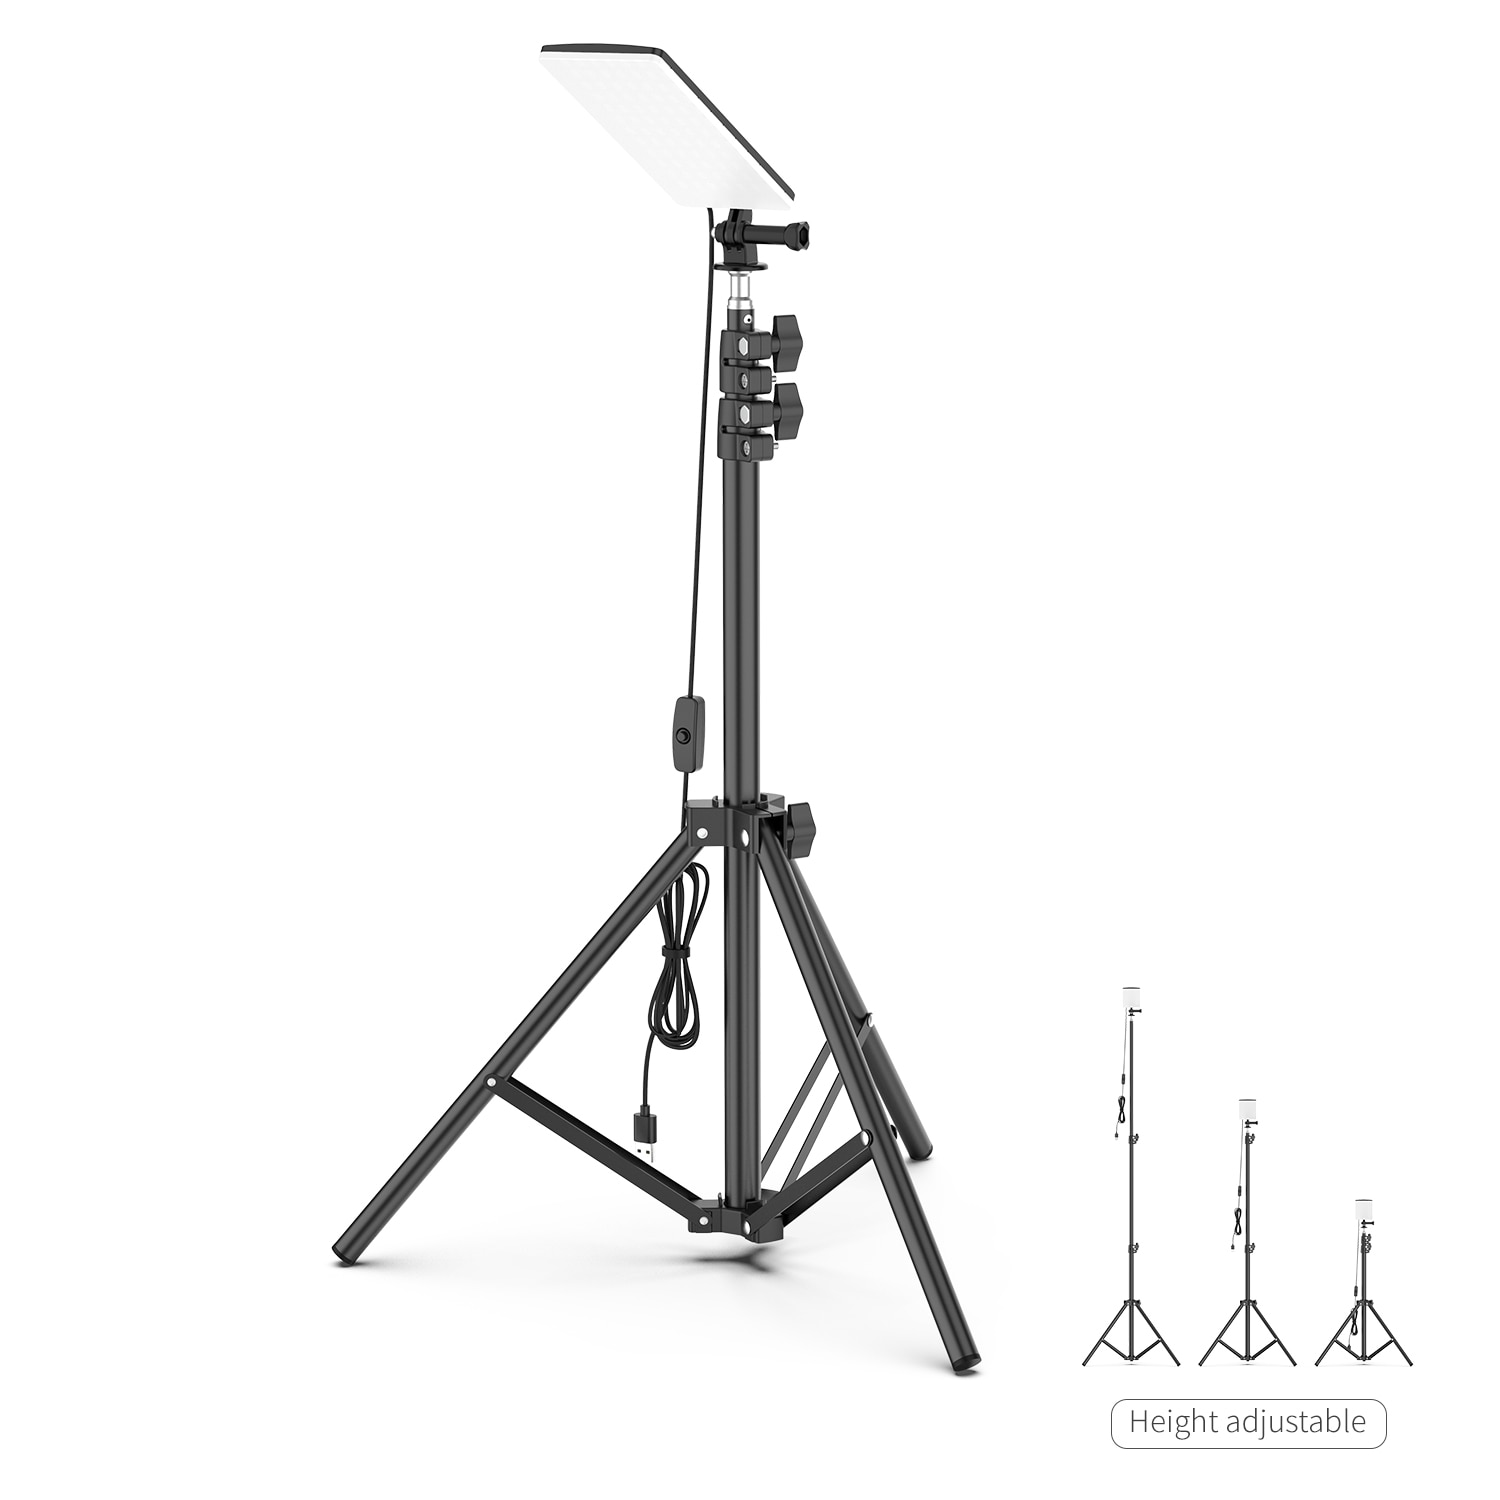 Selfie Camera Lamp with Telescopic Tripod 84PCS LEDs Lamp Light USB Powered Adjustable Height Camping Light  for Live Video Show